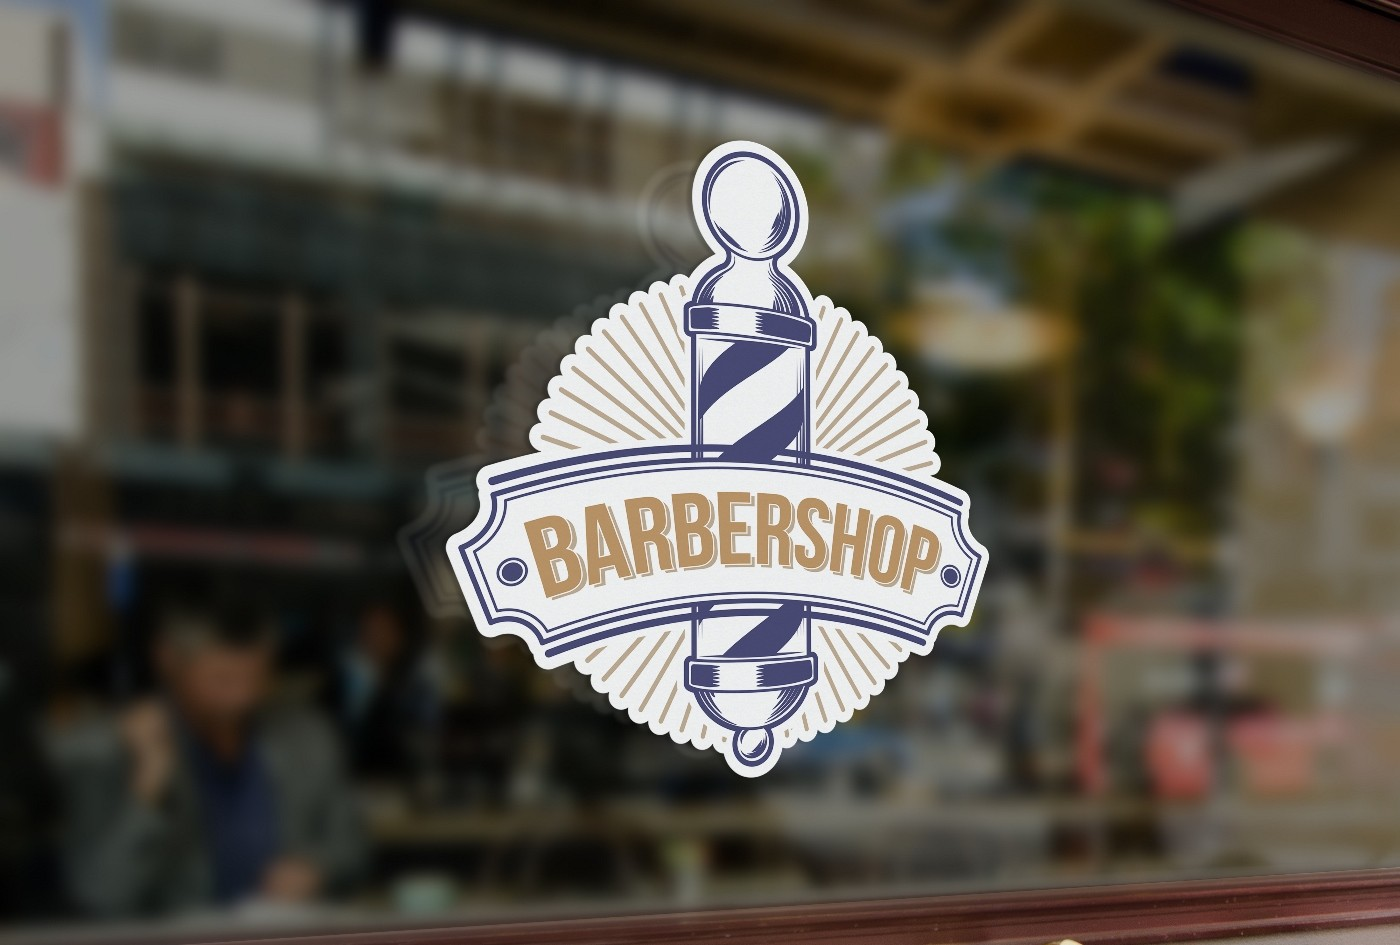 B1 bespoke barber shop sign window sticker a high quality vinyl sticky back plastic decal commercial window glass stickers